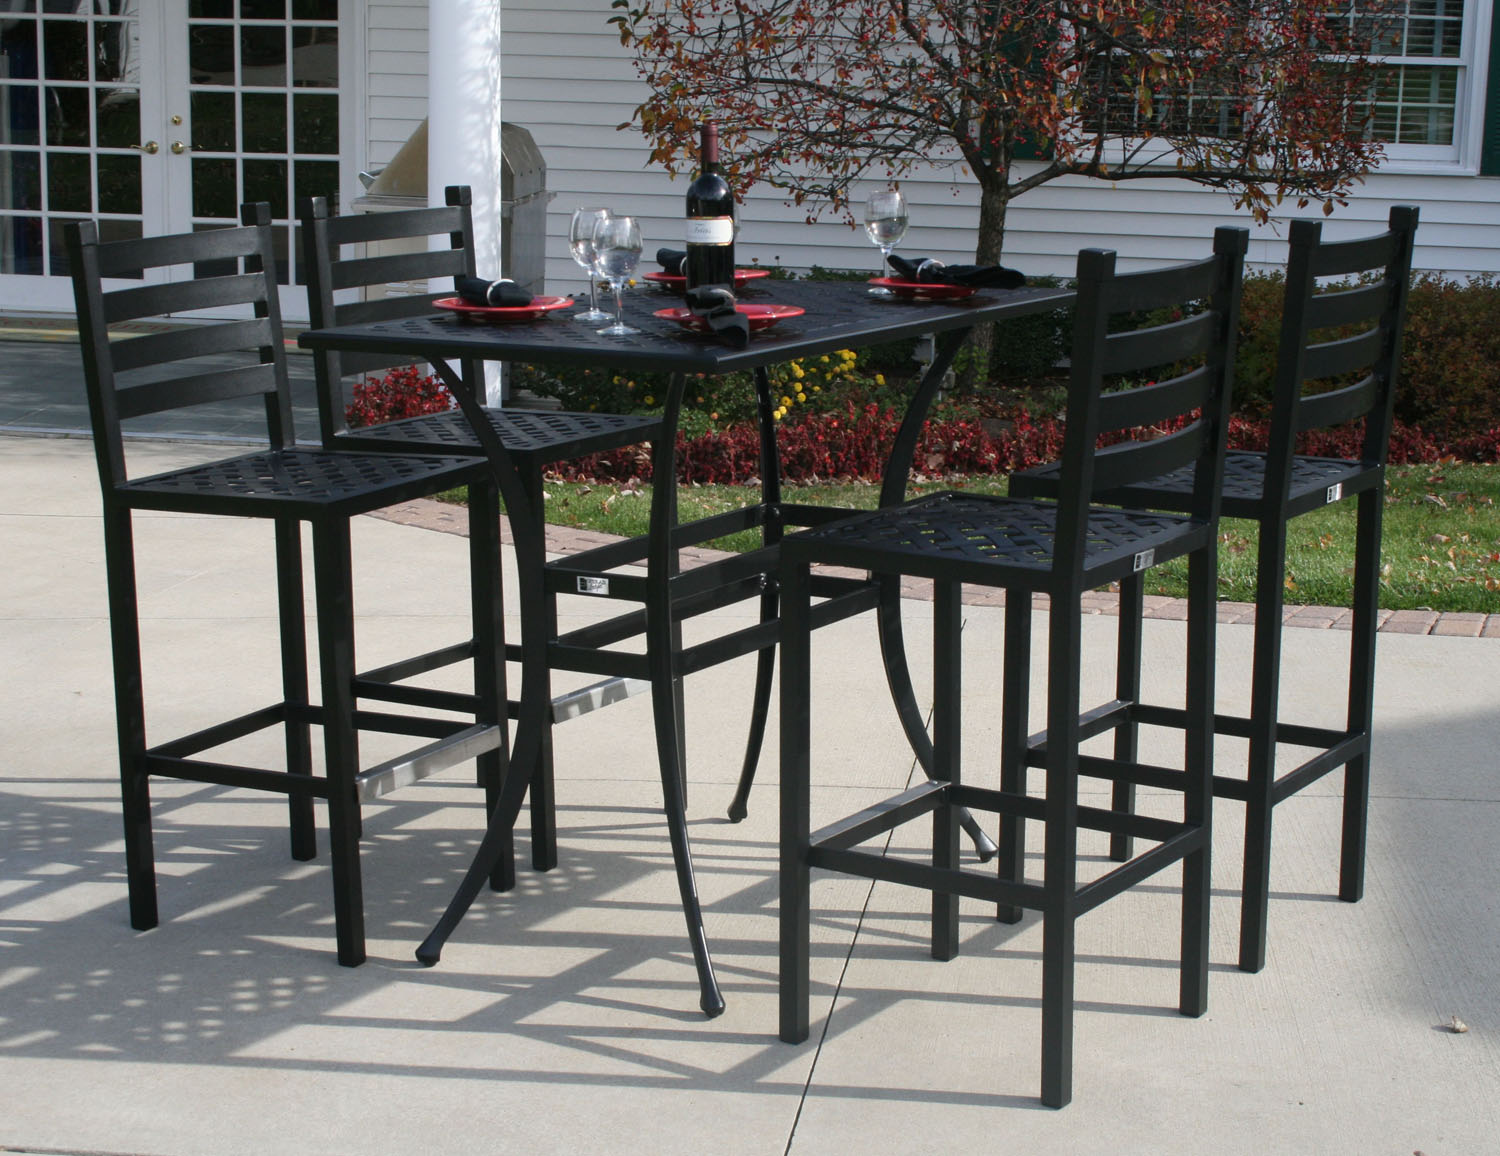 Ansley Luxury 4-Person All Welded Cast Aluminum Patio Furniture Bar ...